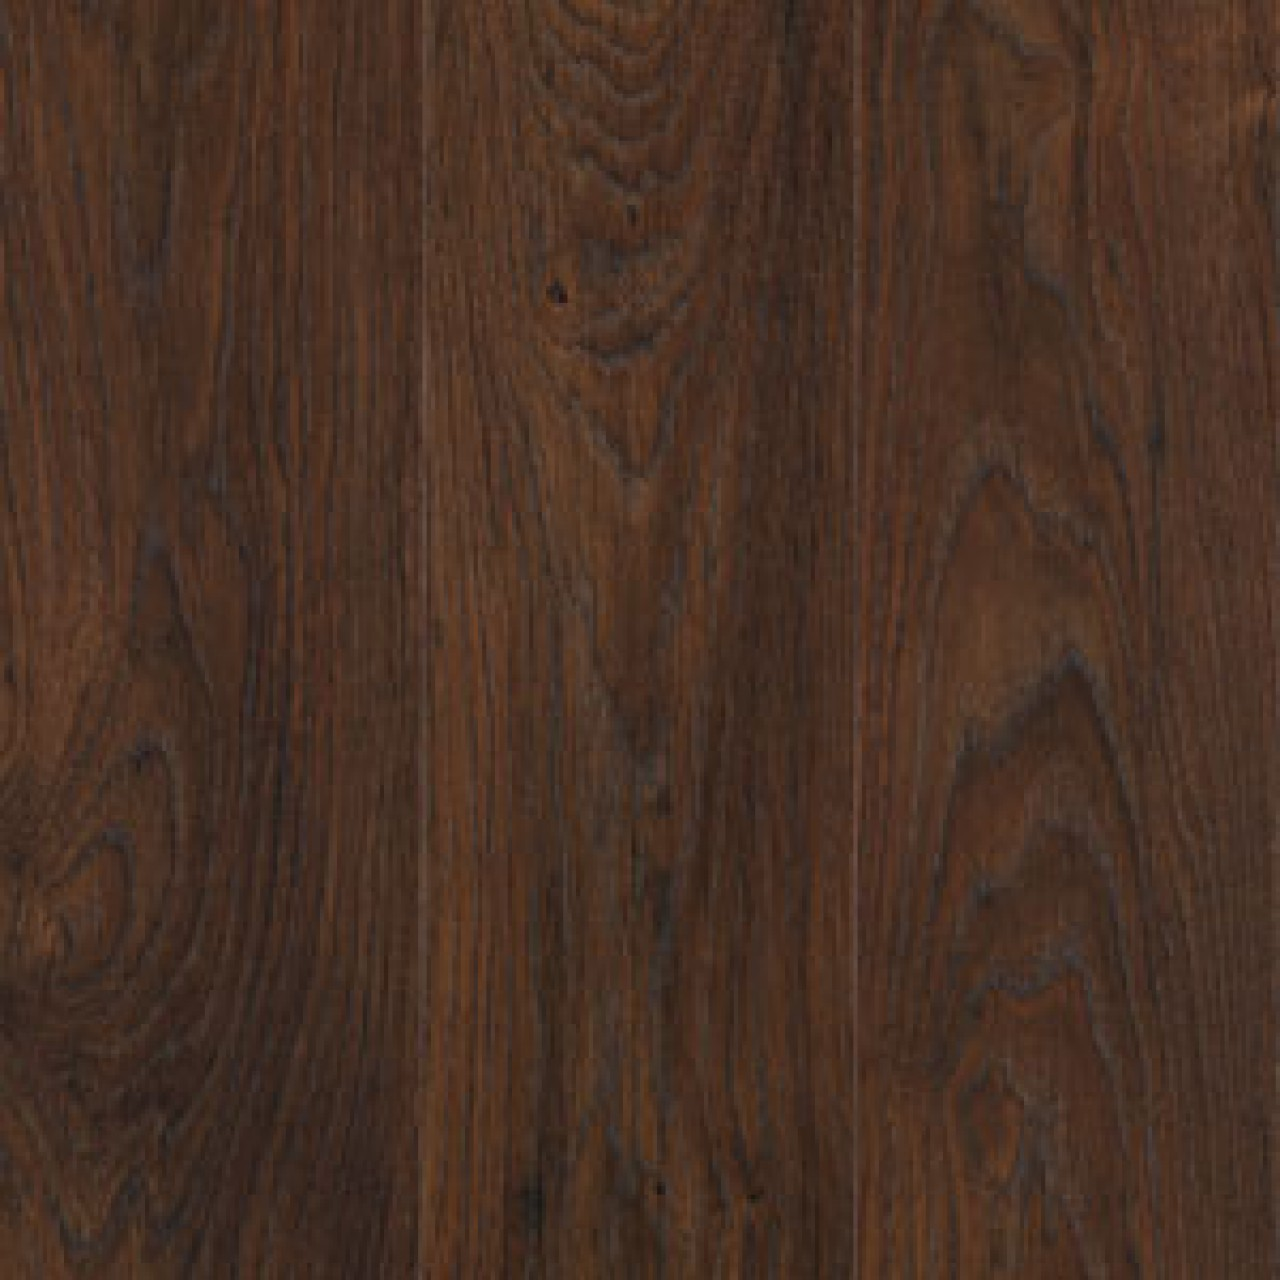 Laminate flooring carpet and laminate flooring for Laminate tiles